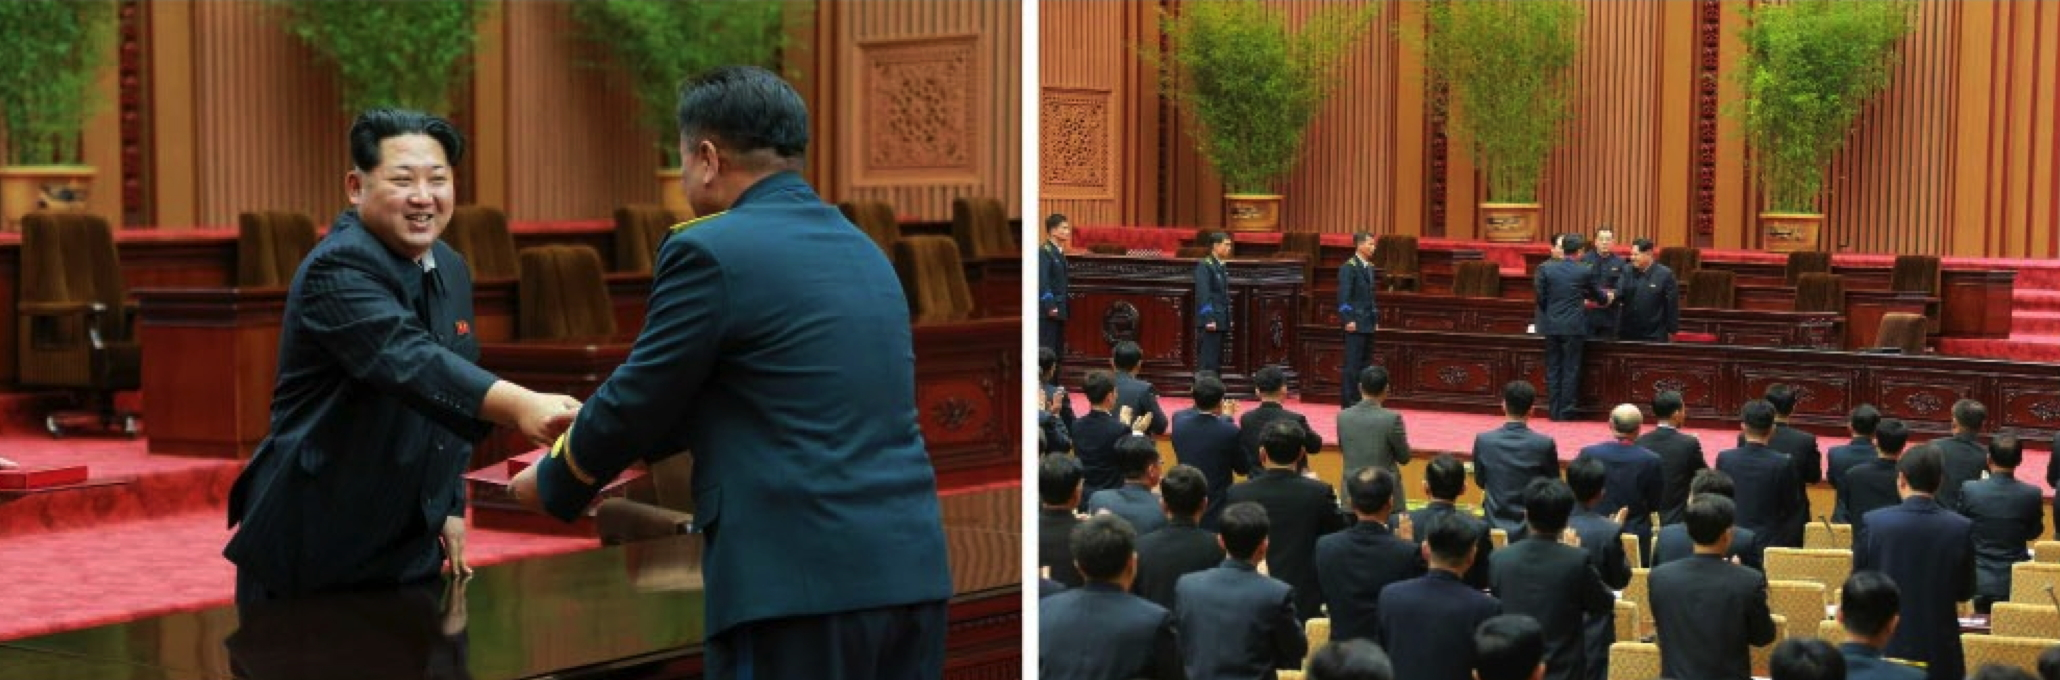 Kim Jong Un presents awards to personnel involved in the KMS-4 launch on February 17, 2016 (Photos: KCNA/Rodong Sinmun).